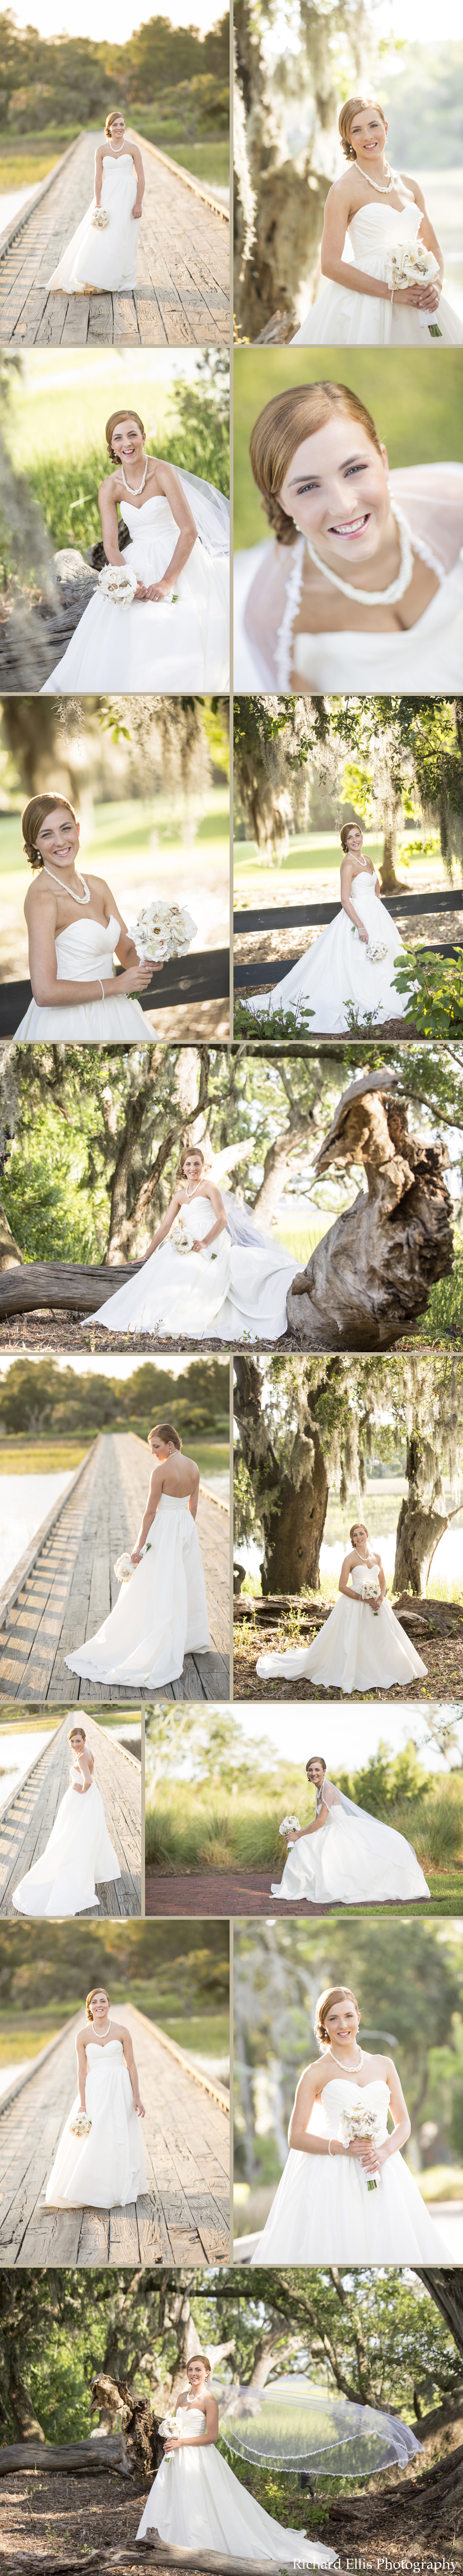 Michelle's bridals photographed by Charleston wedding photographer Richard Ellis Photography